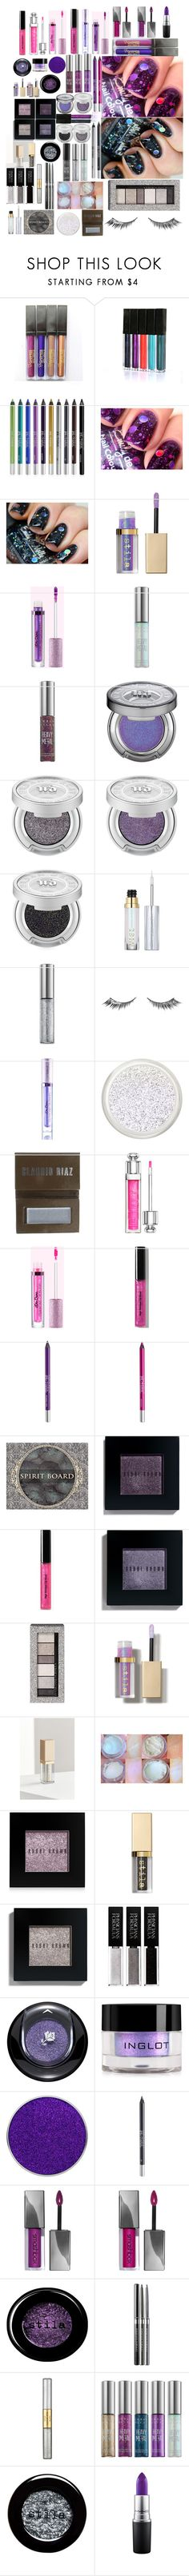 """""""#PolyPresents: Sparkly Beauty - Spectrum: Pink & Purple To Black, White & Silver"""" by wastedstalker ❤ liked on Polyvore featuring beauty, Urban Decay, Stila, Lime Crime, Claudio Riaz, Christian Dior, Bobbi Brown Cosmetics, Physicians Formula, Universal and Lancôme"""